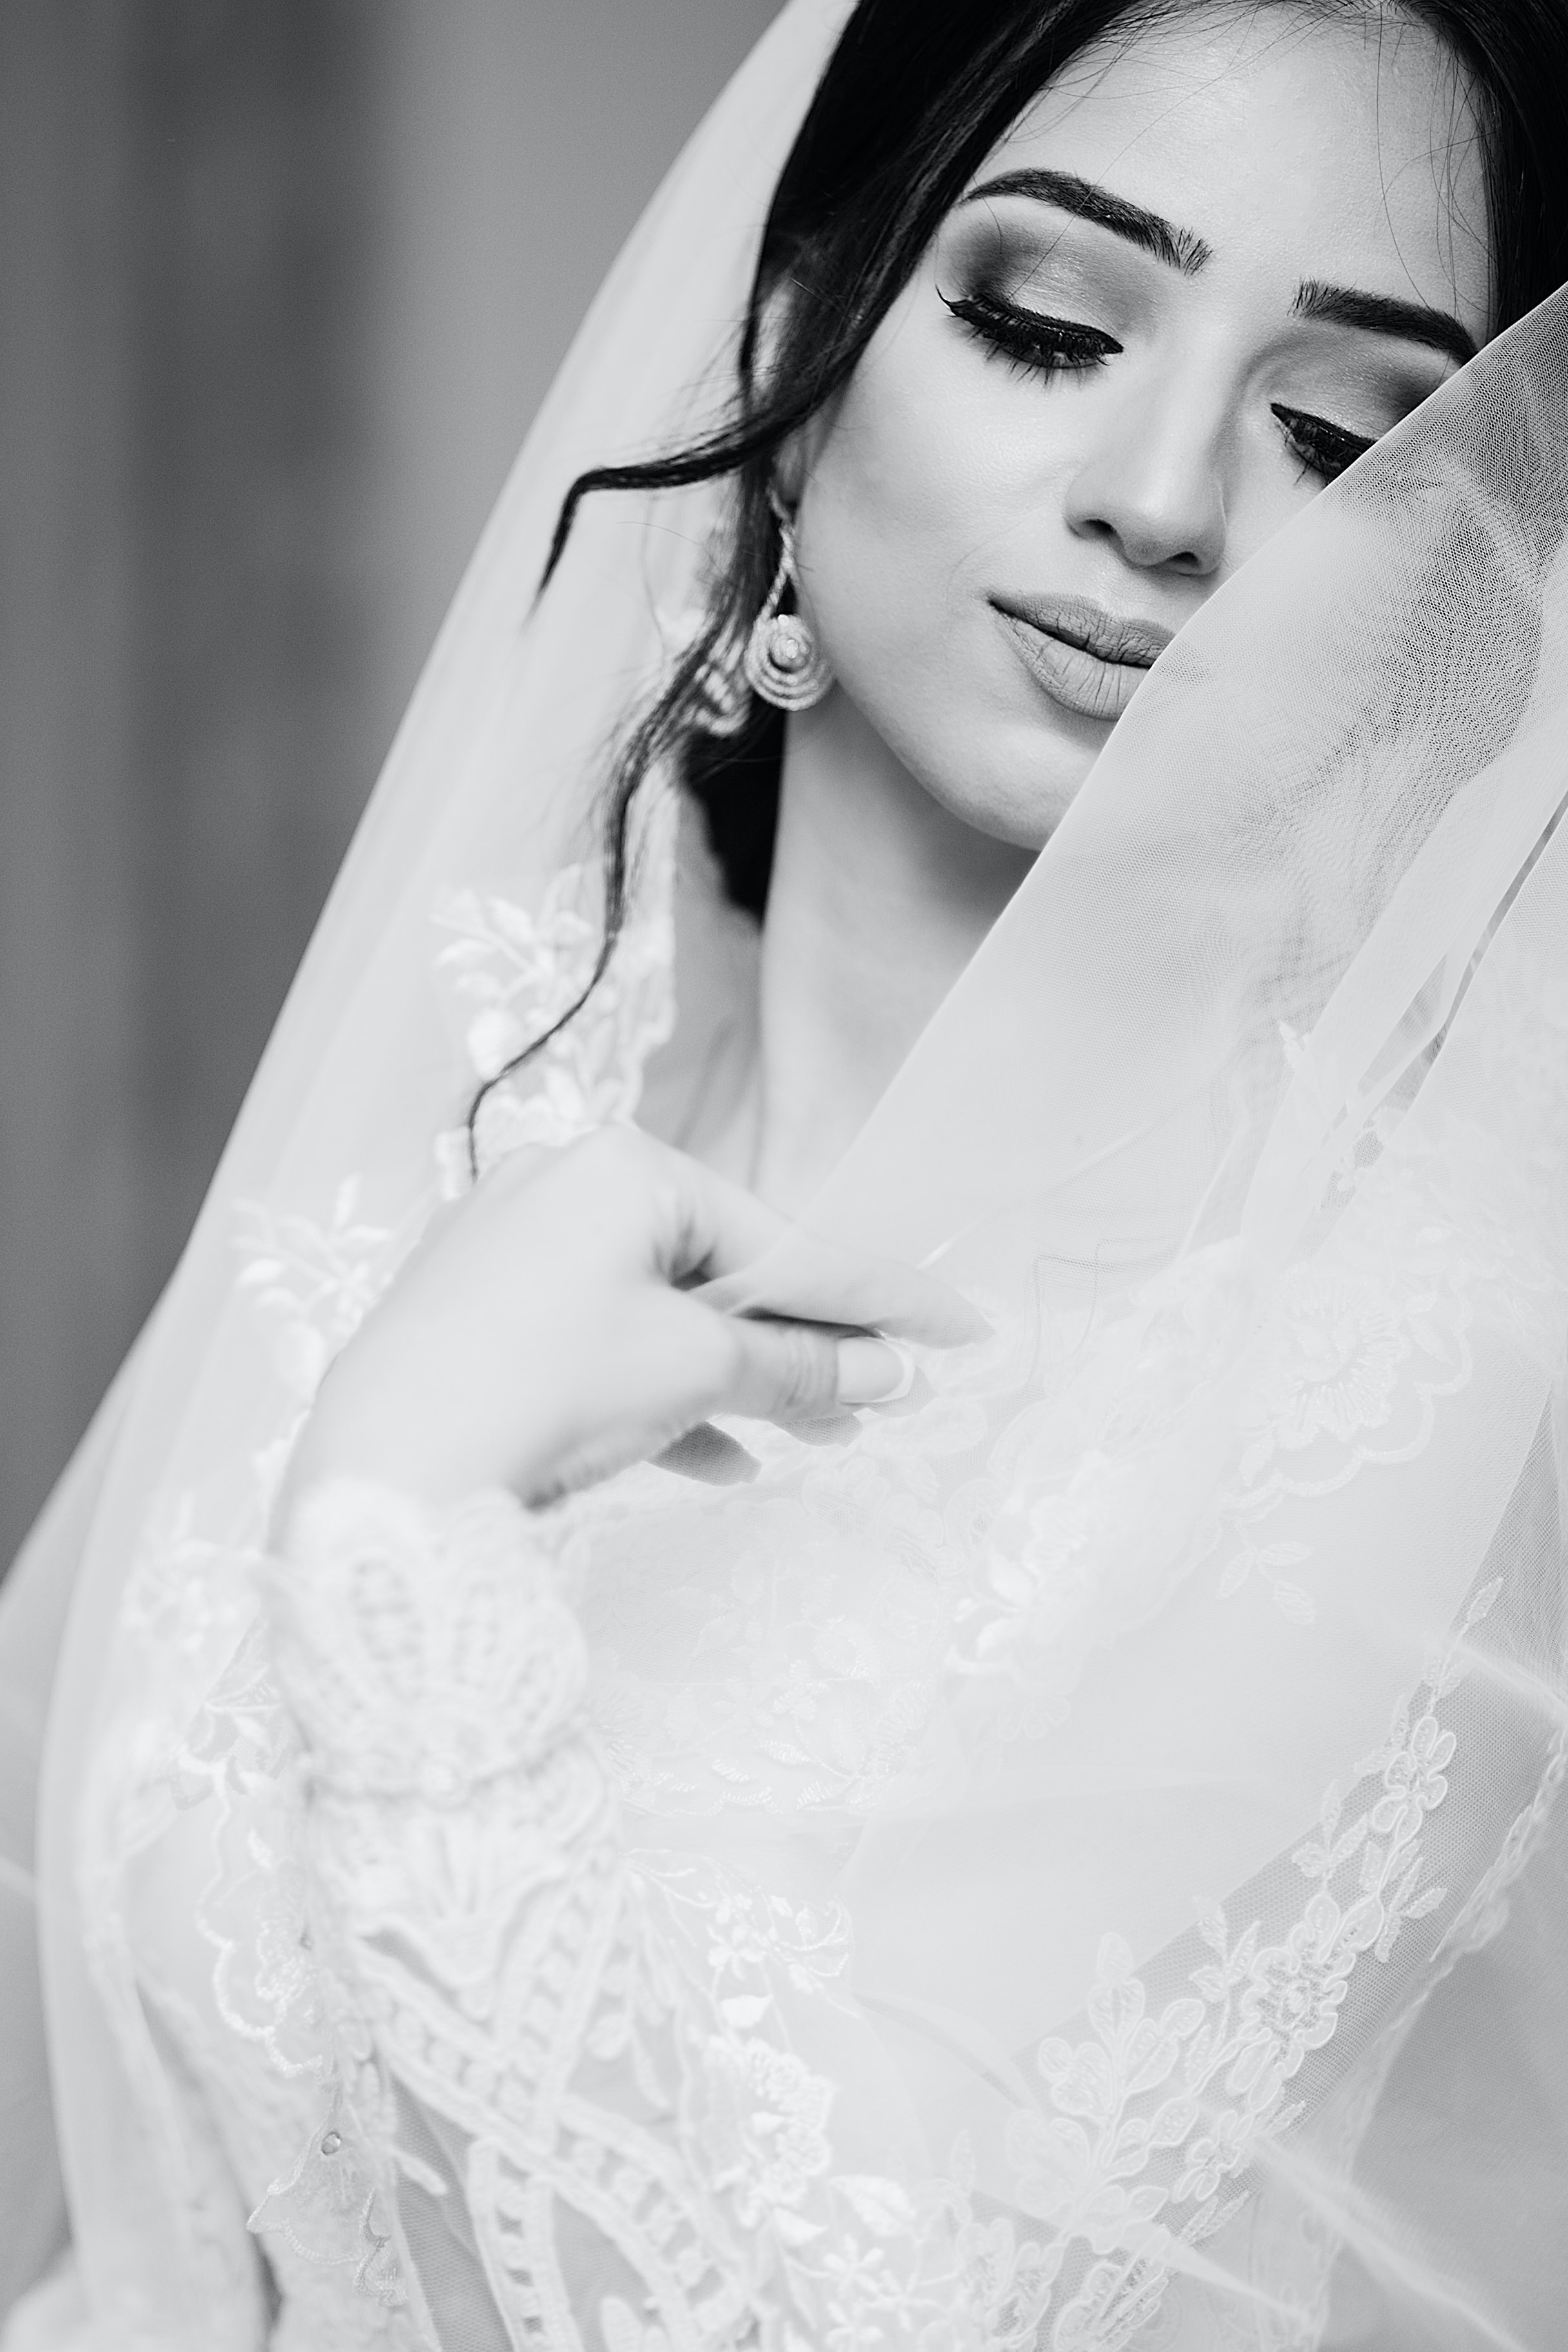 Black and white shot of bride with veil in wedding dress, New York, Texas, United States